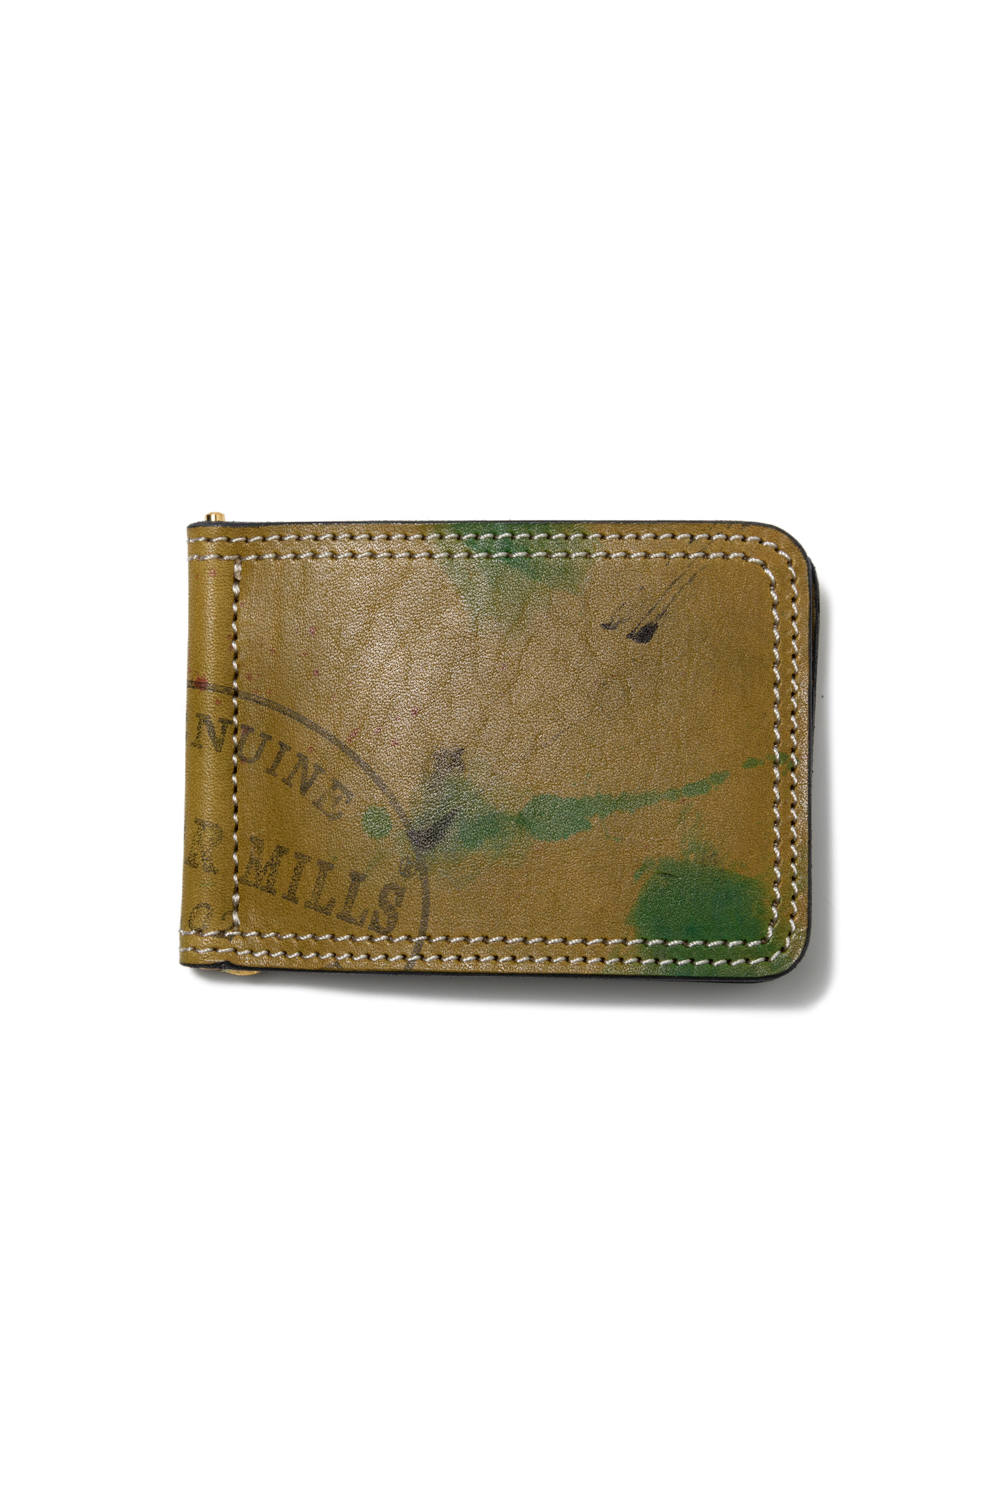 【20AW】ペイントレザーマネークリップ [グリーン] / PAINT LEATHER MONEY CLIP [GREEN]